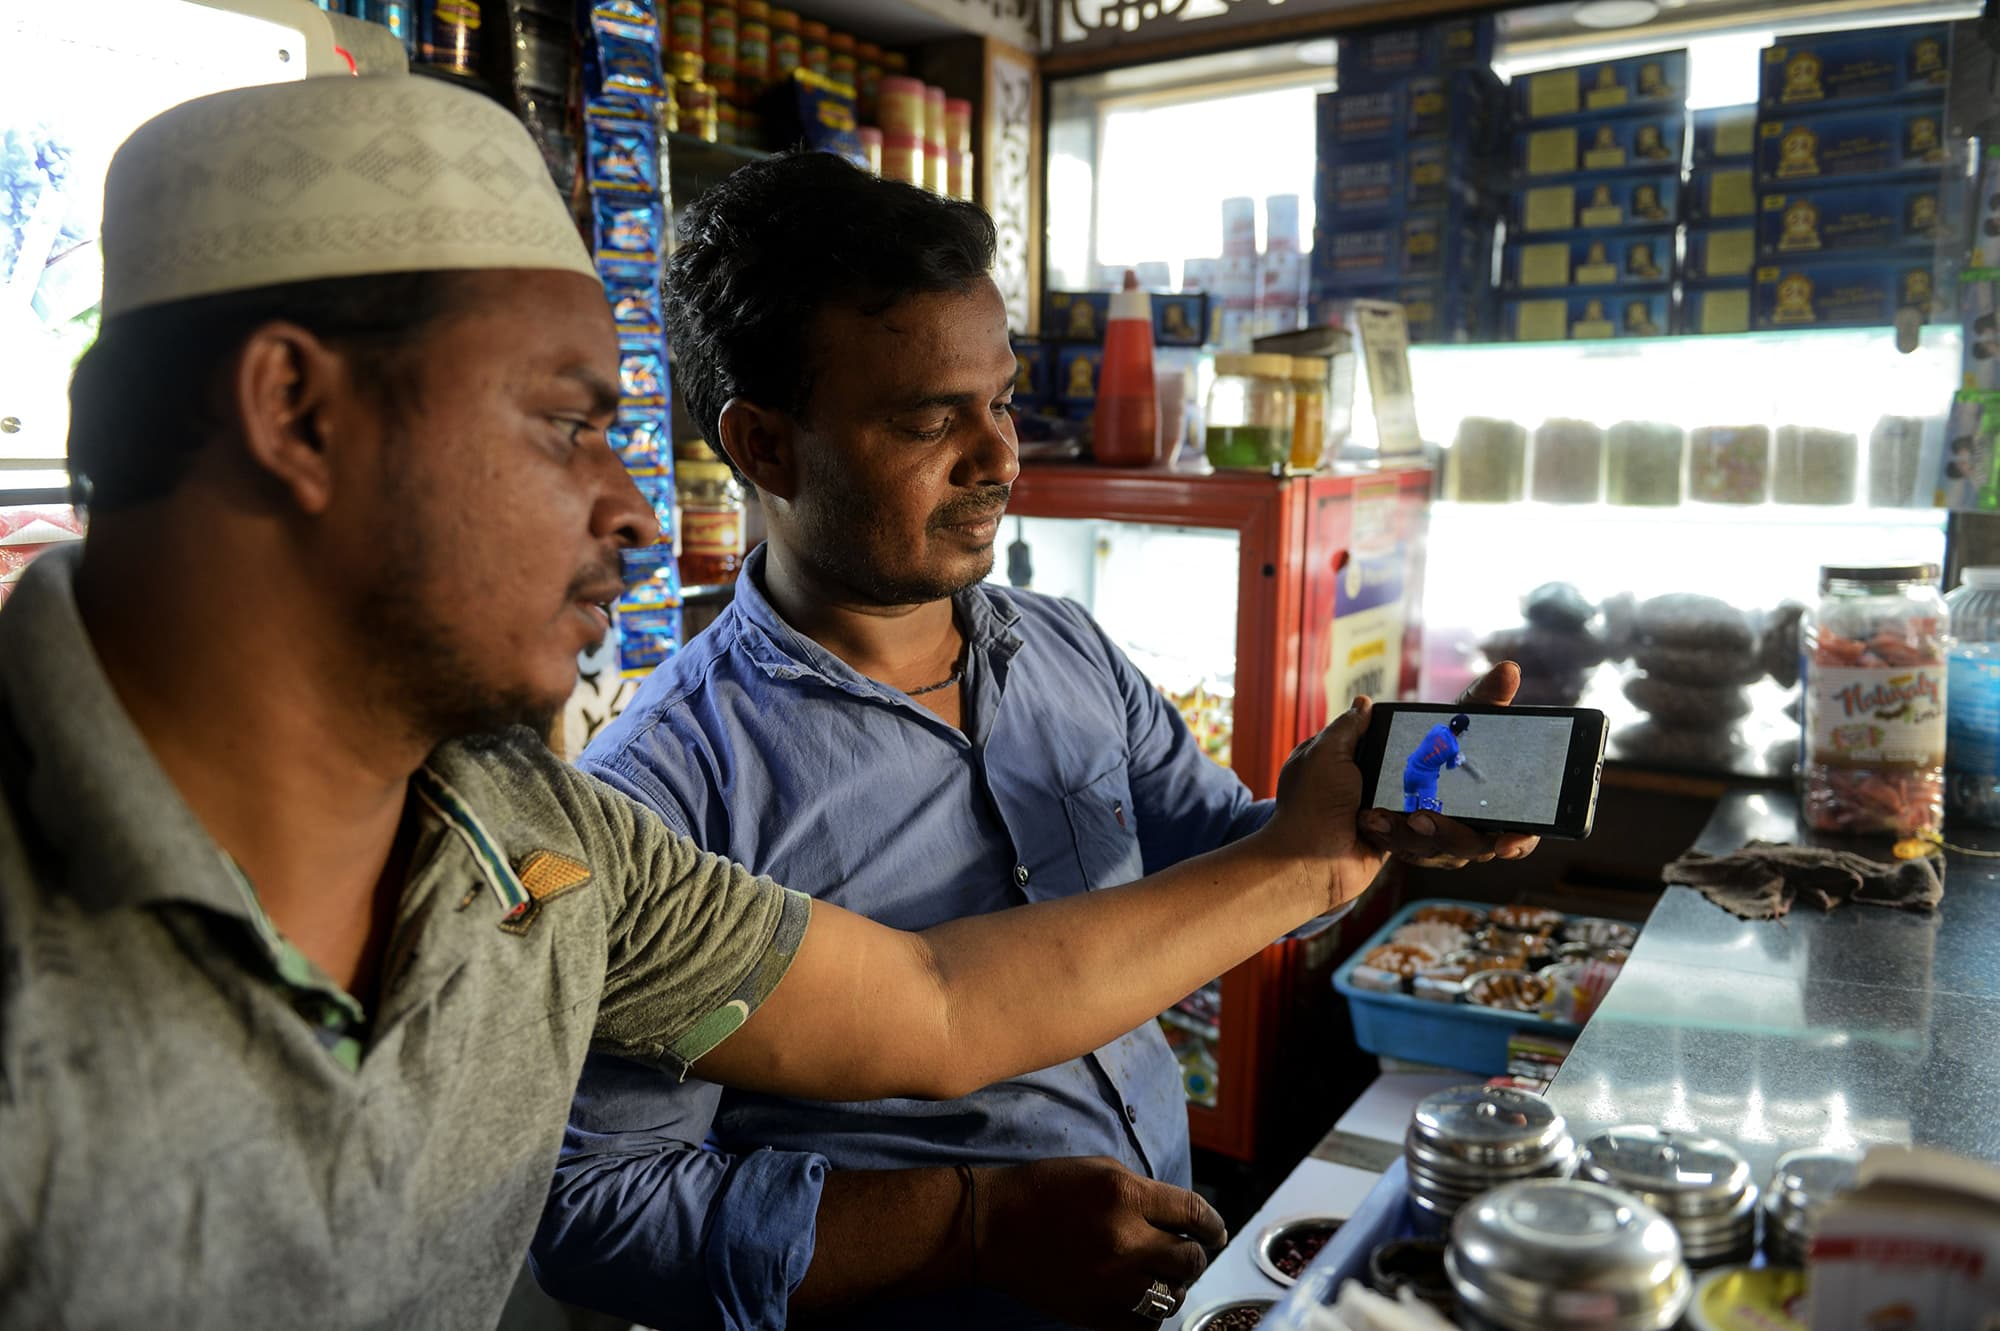 Indian fans watch a live broadcast of the match on a mobile phone at a paan shop in Hyderabad. ─ AFP